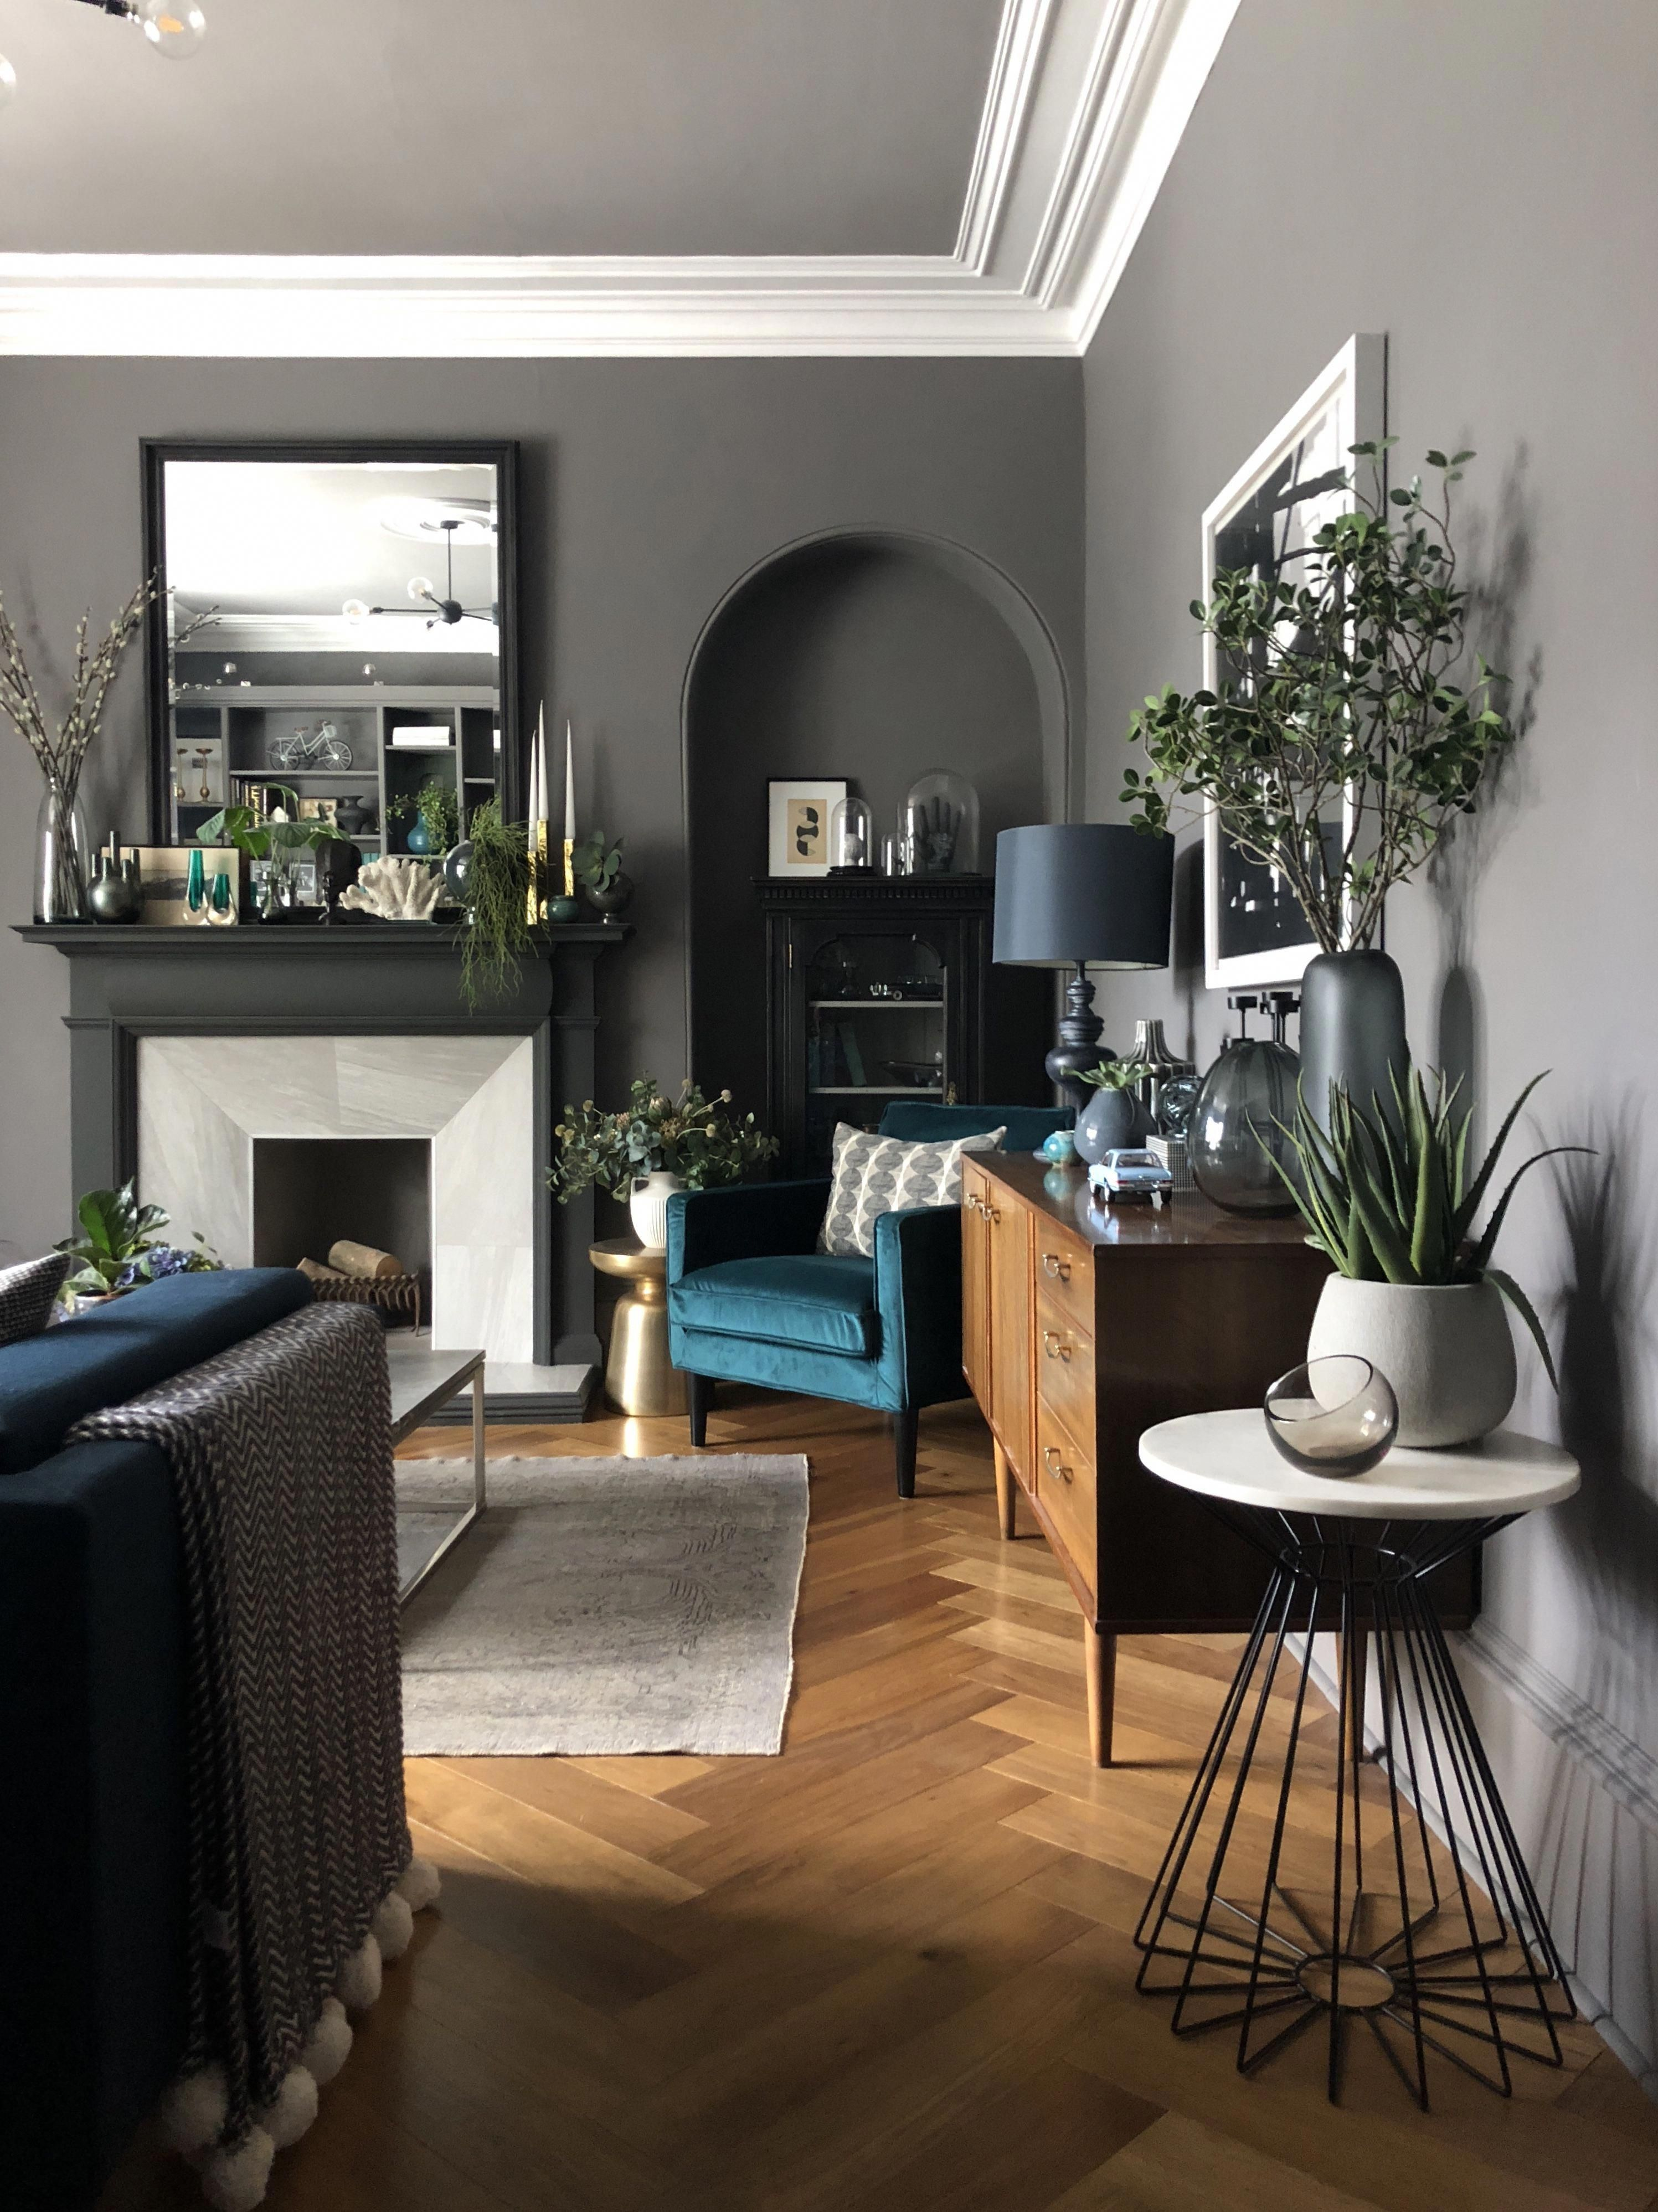 Grey Living Room Walls In Whistling Whipoorwill By Valspar U K Oak Herringbone Floor Adds Warmth Al Grey Walls Living Room Living Room Grey Teal Living Rooms